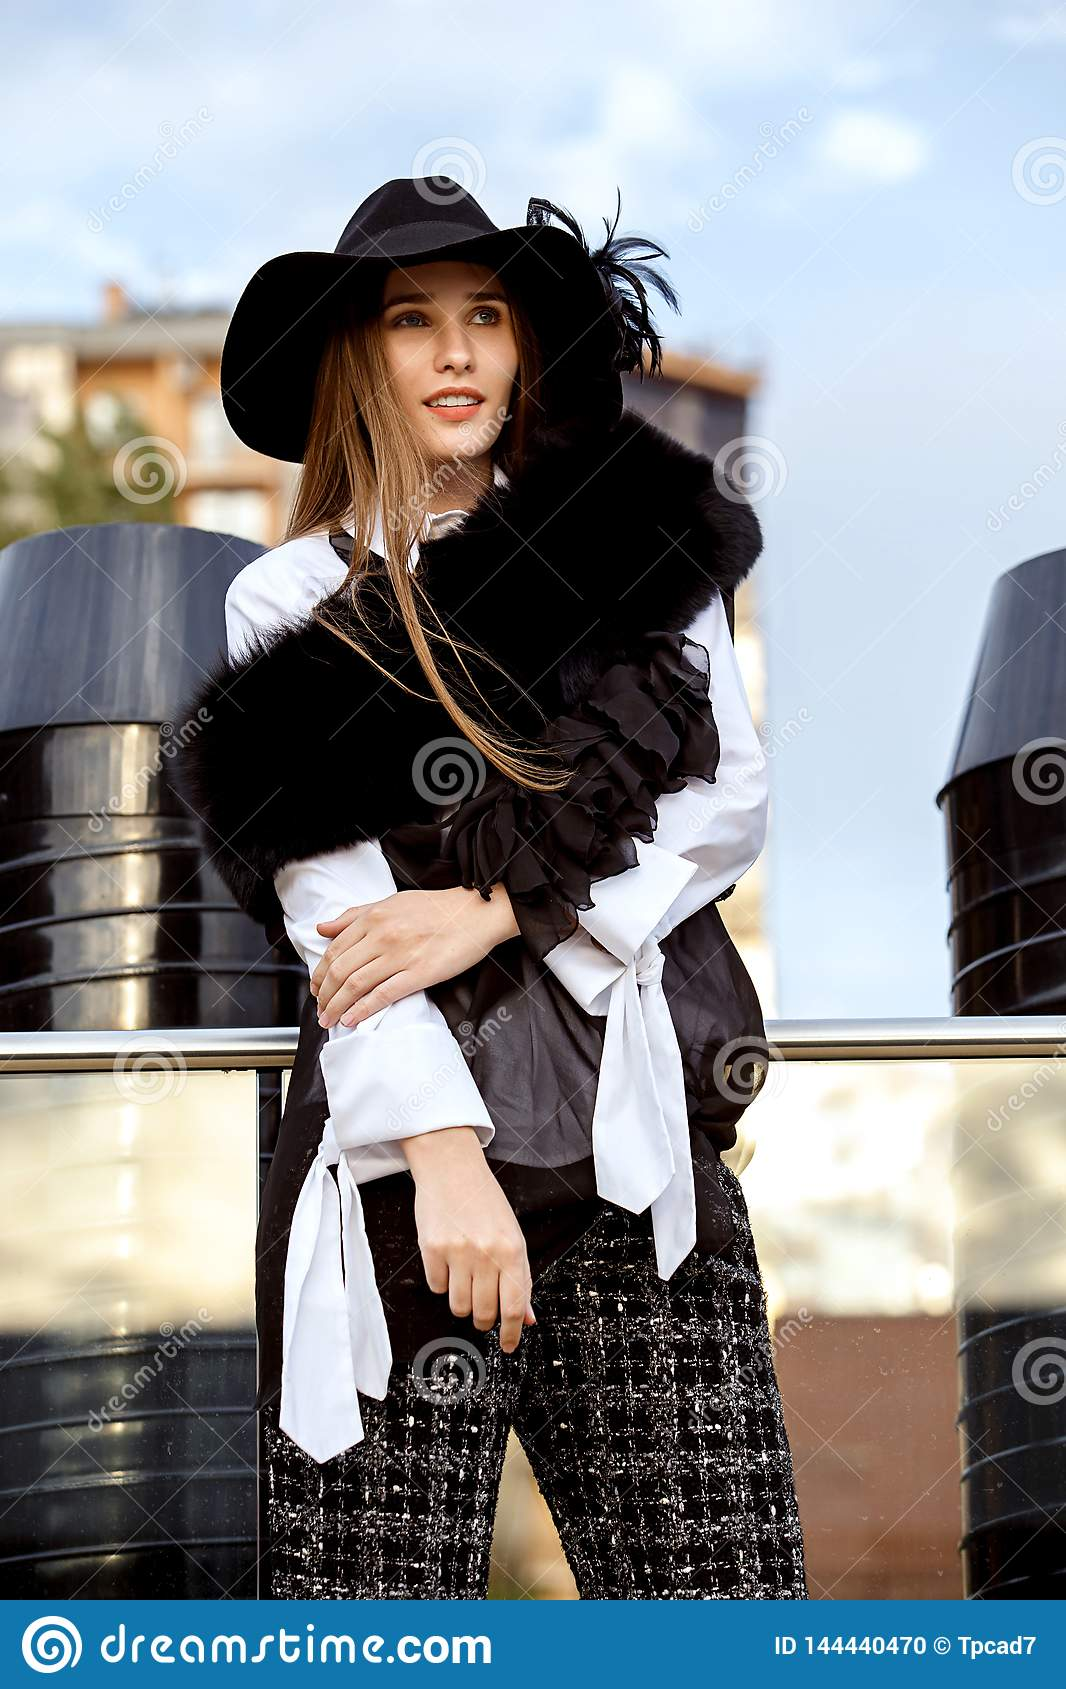 Fashionable slim long-haired girl dressed in a black stylish jacket on a white shirt, black pants and a hat with a wide